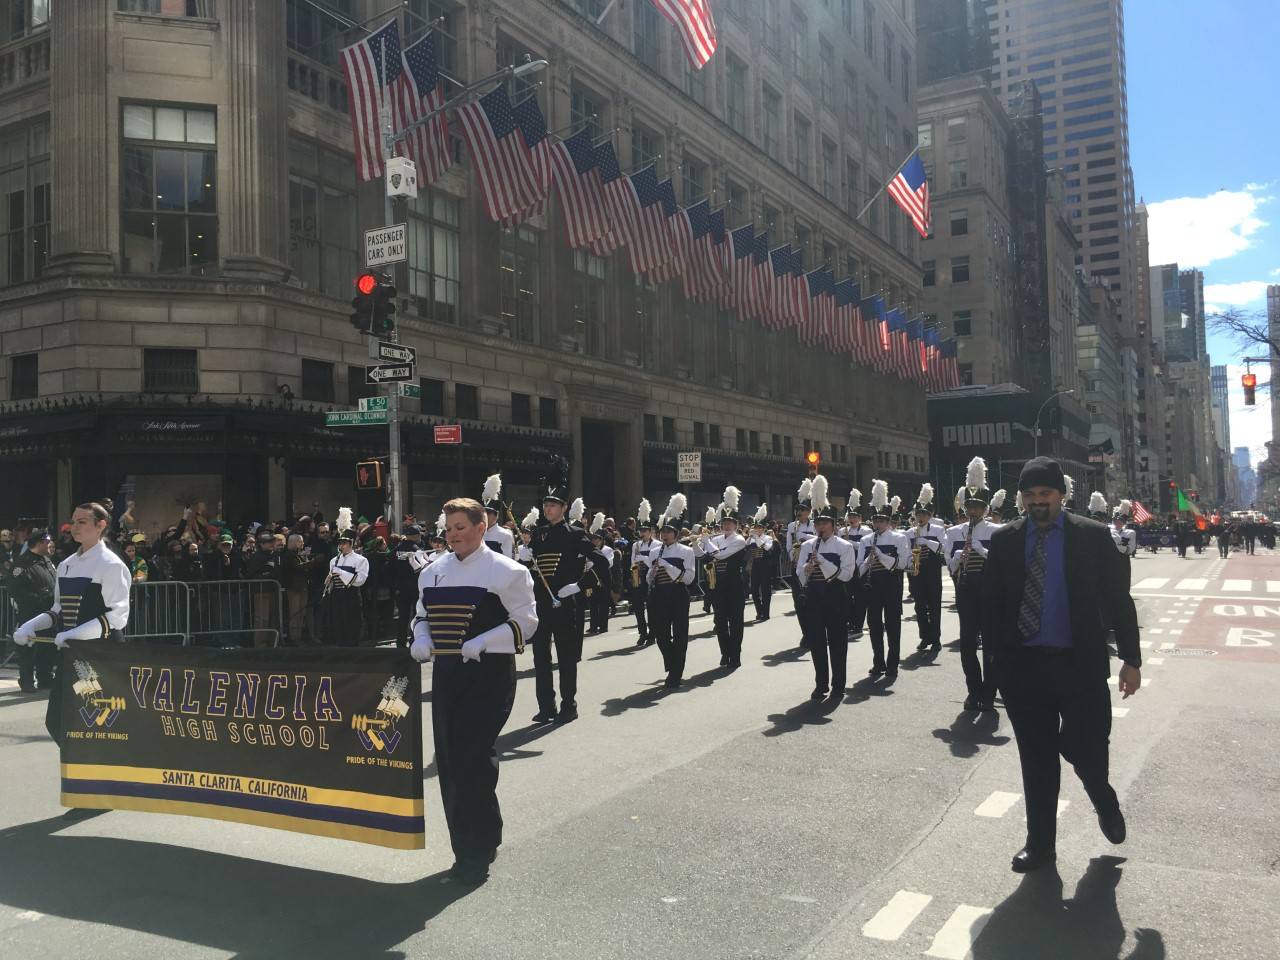 Valencia marching band performs at Carnegie Hall, NYC St. Patrick's Day parade